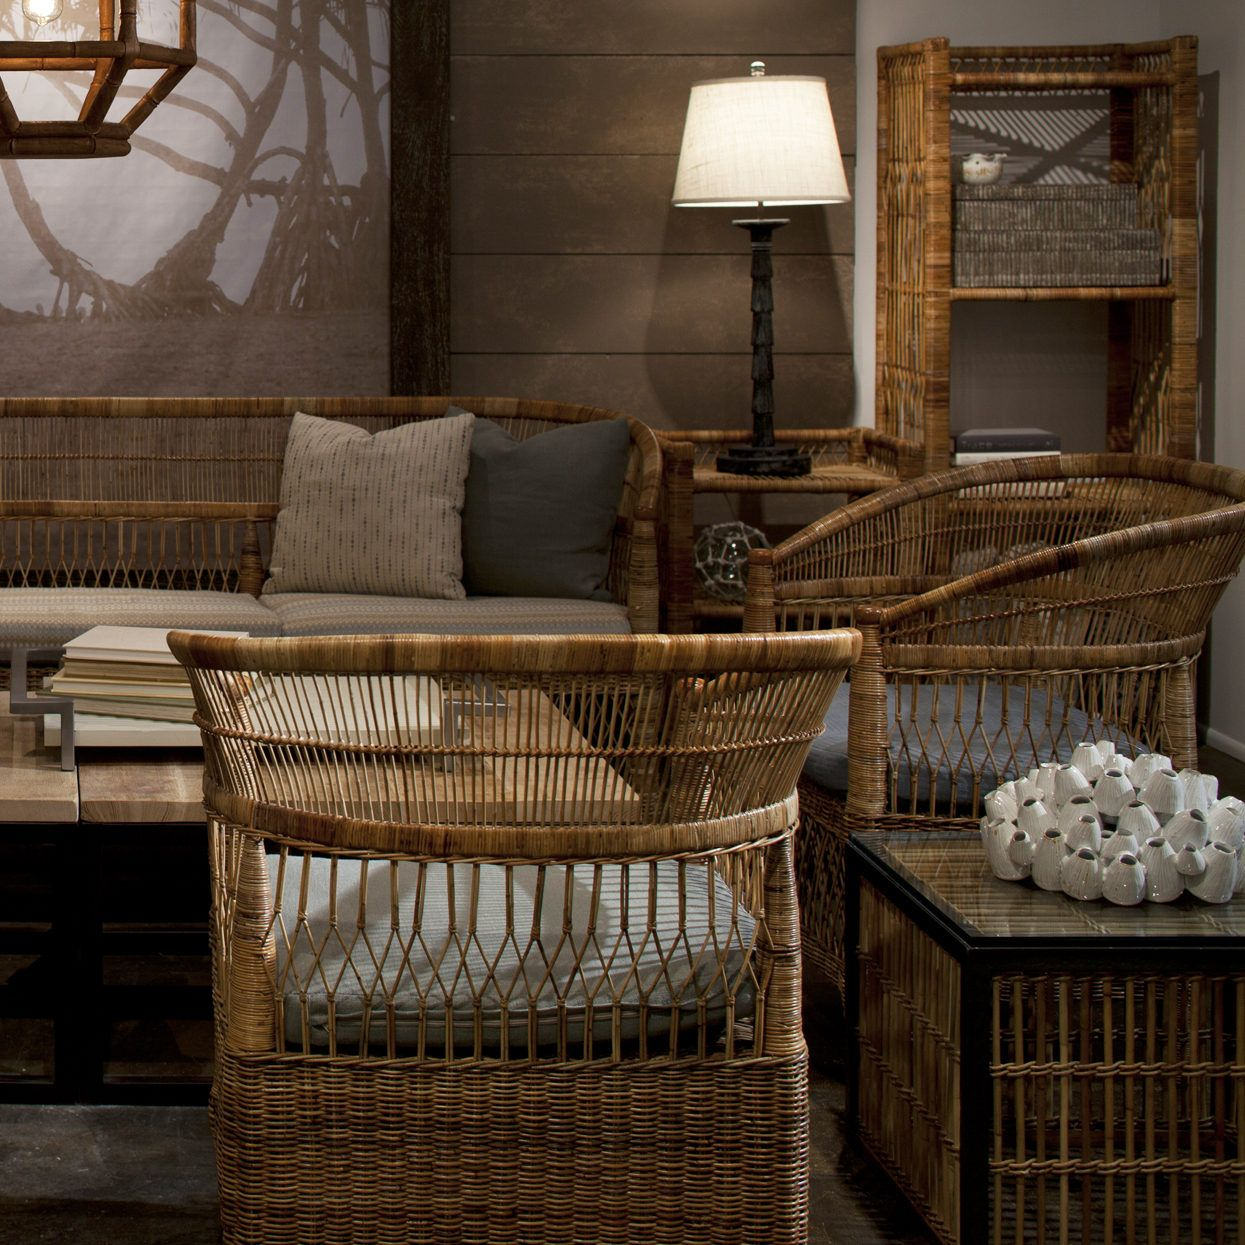 cocoon inspiring home interior design ideas bycocoon com malawi